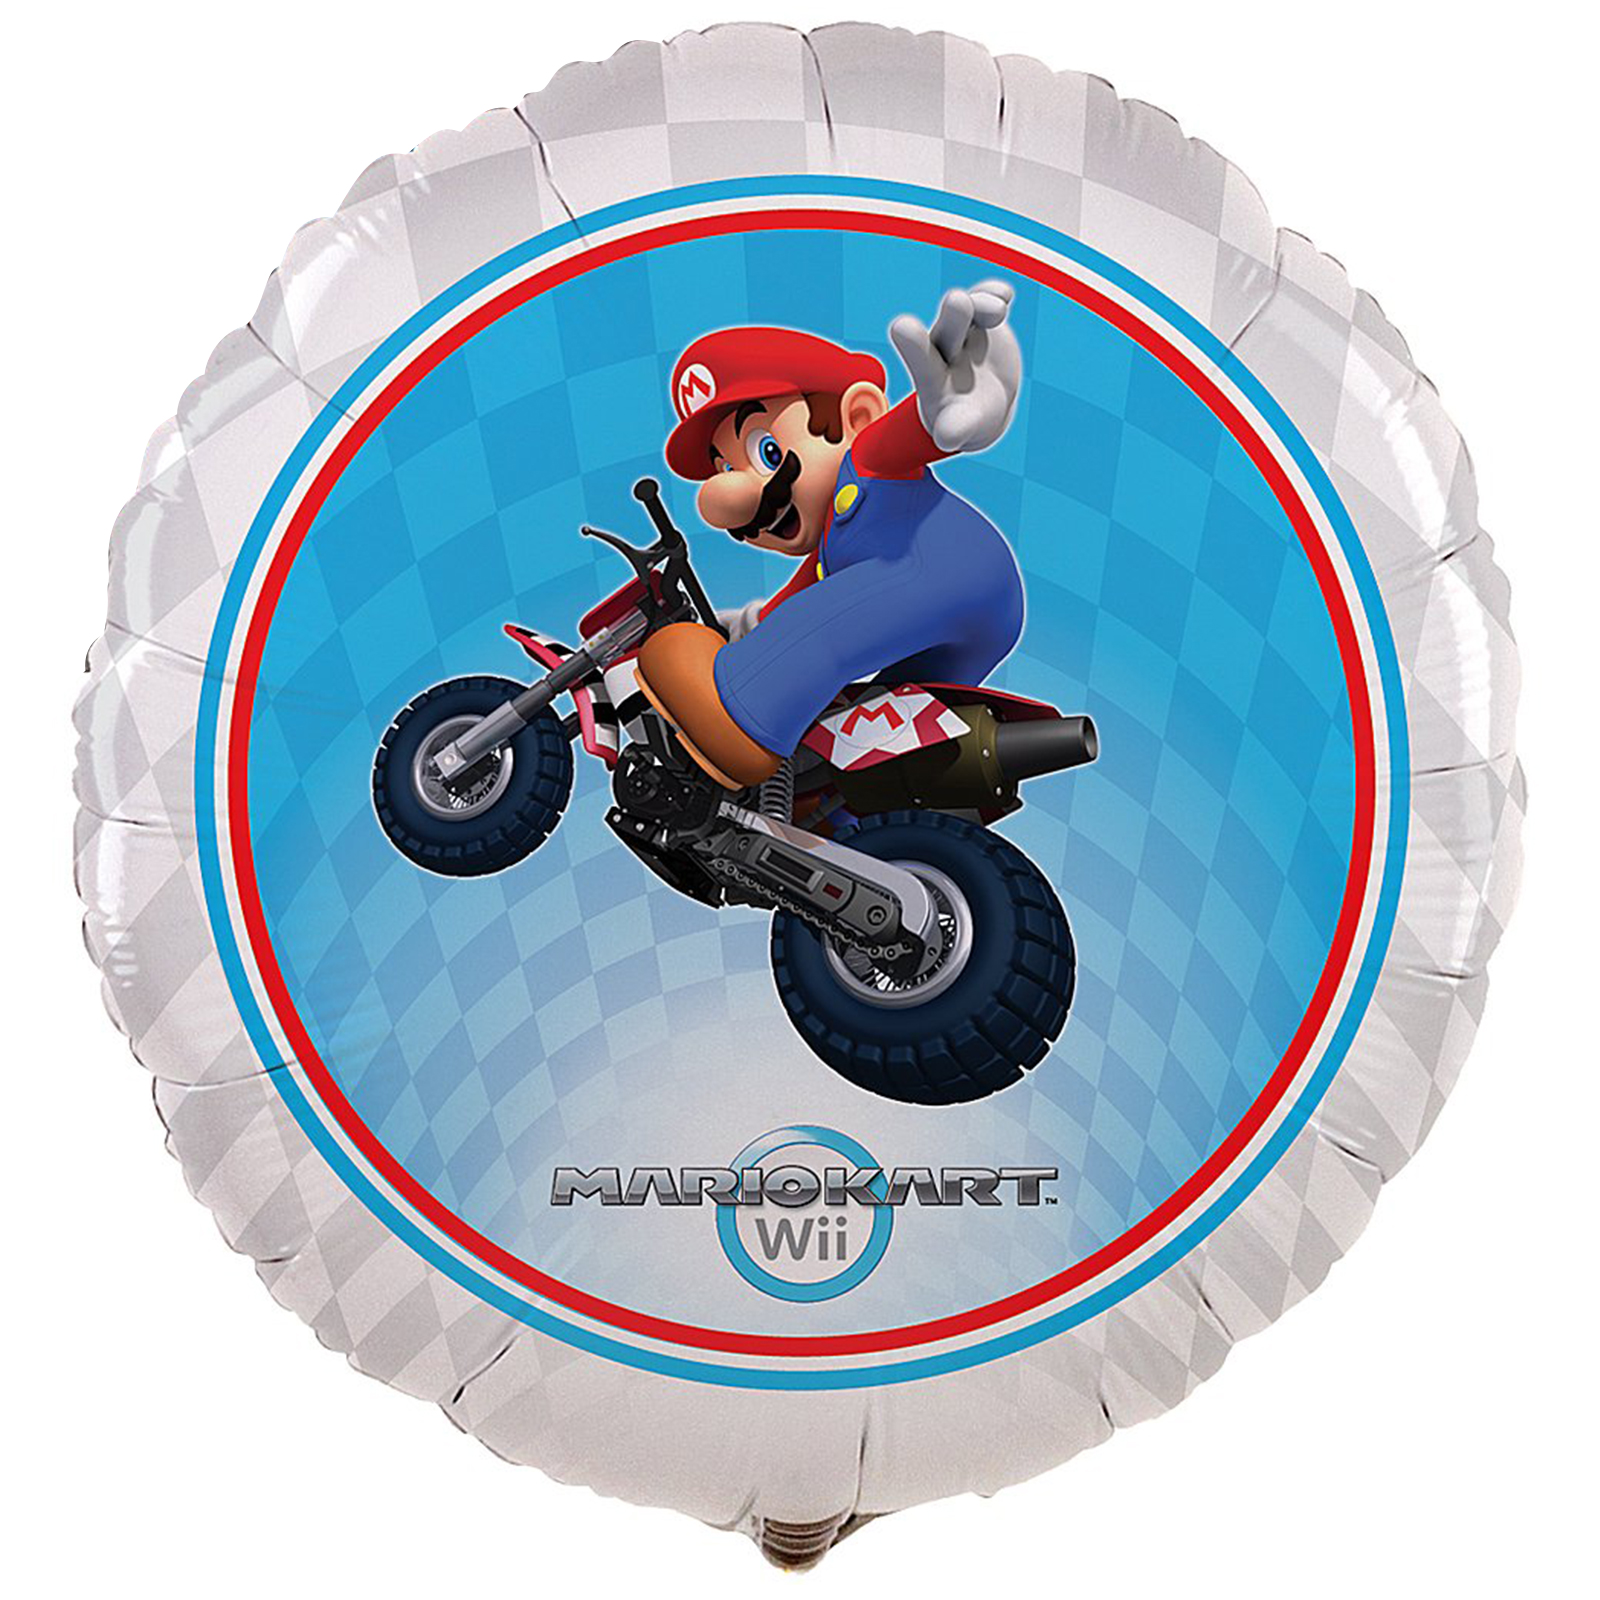 Super Mario Brothers Mario Kart Wii Party Supplies Foil Balloon